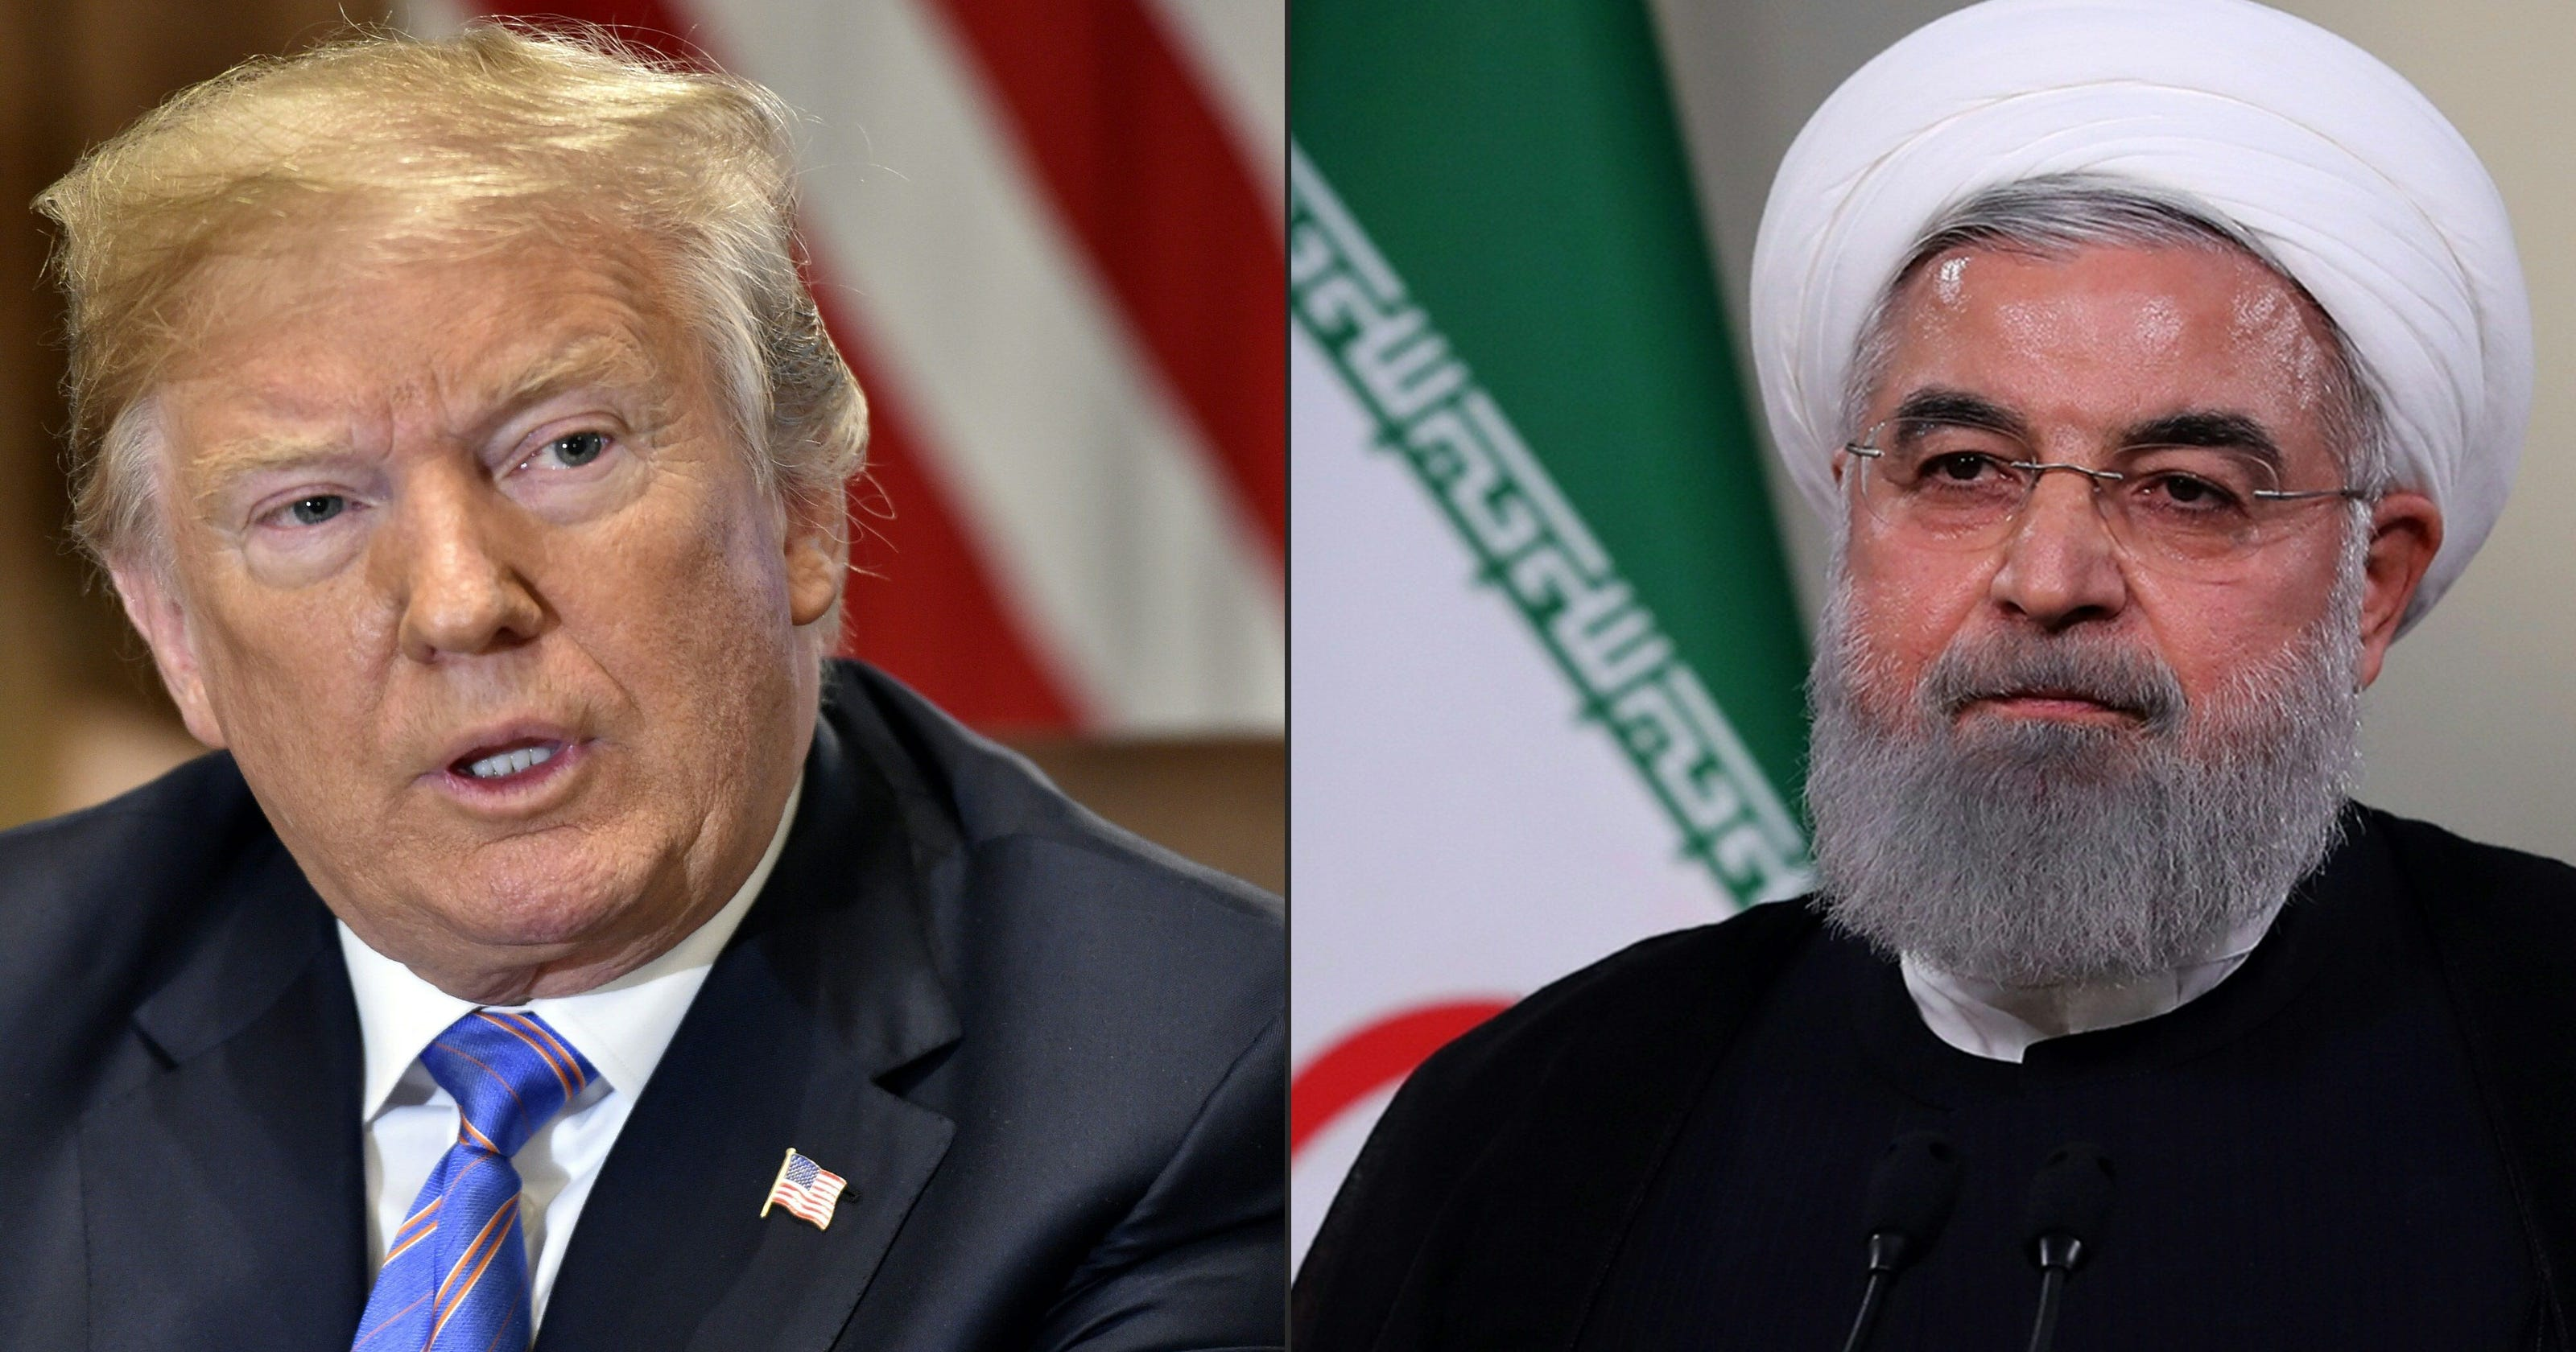 Iranian President Hassan Rouhani rules out meeting with President Donald Trump